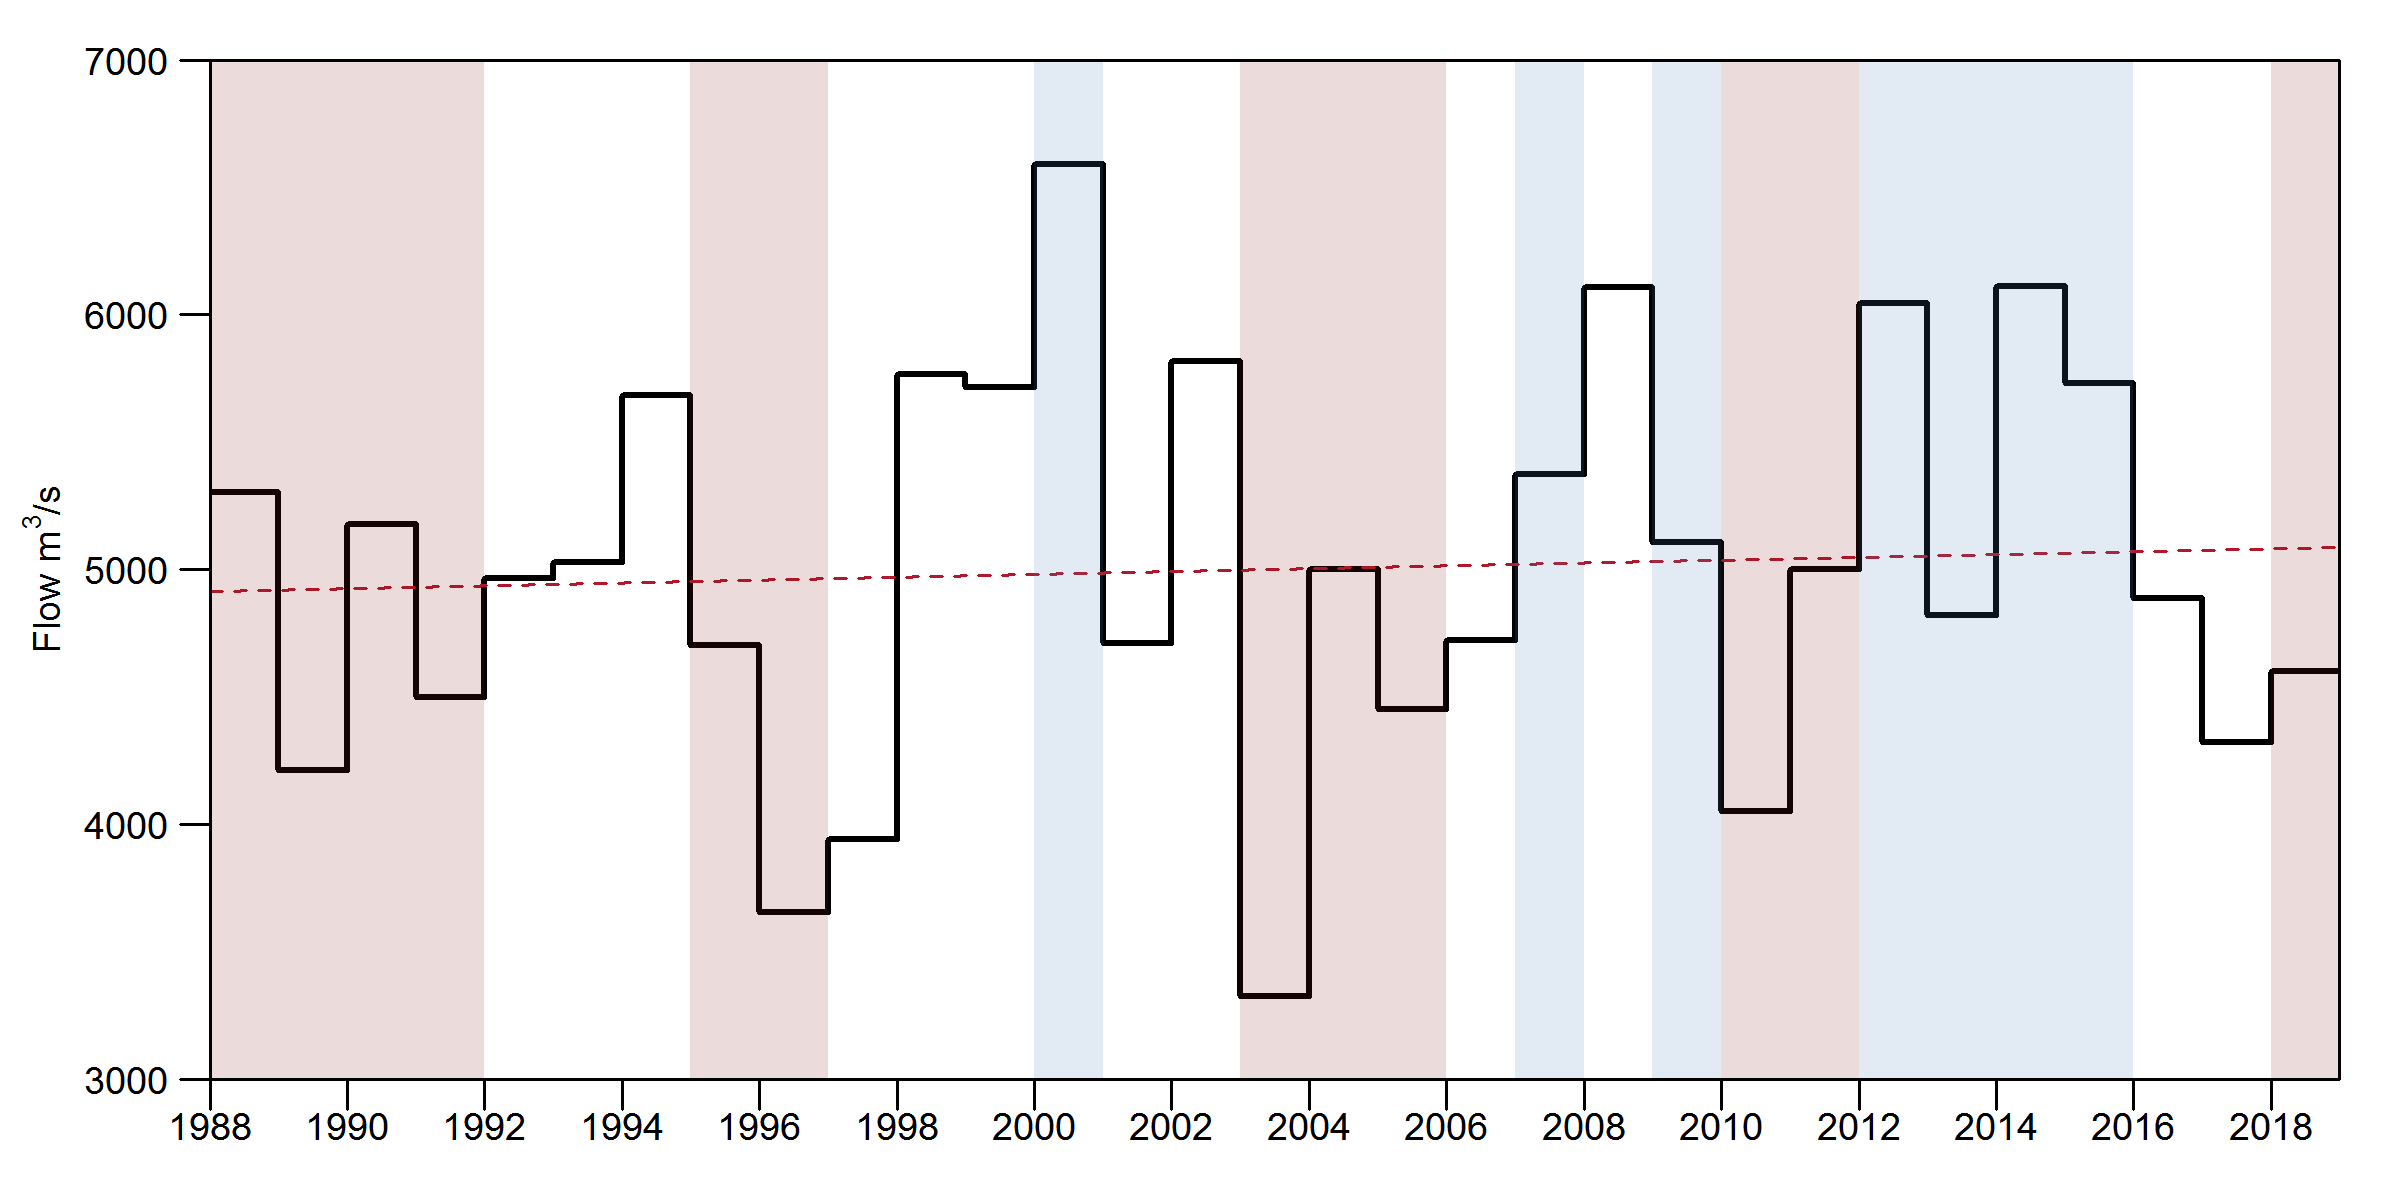 Chart showing average annual river flows from the UK outflow series